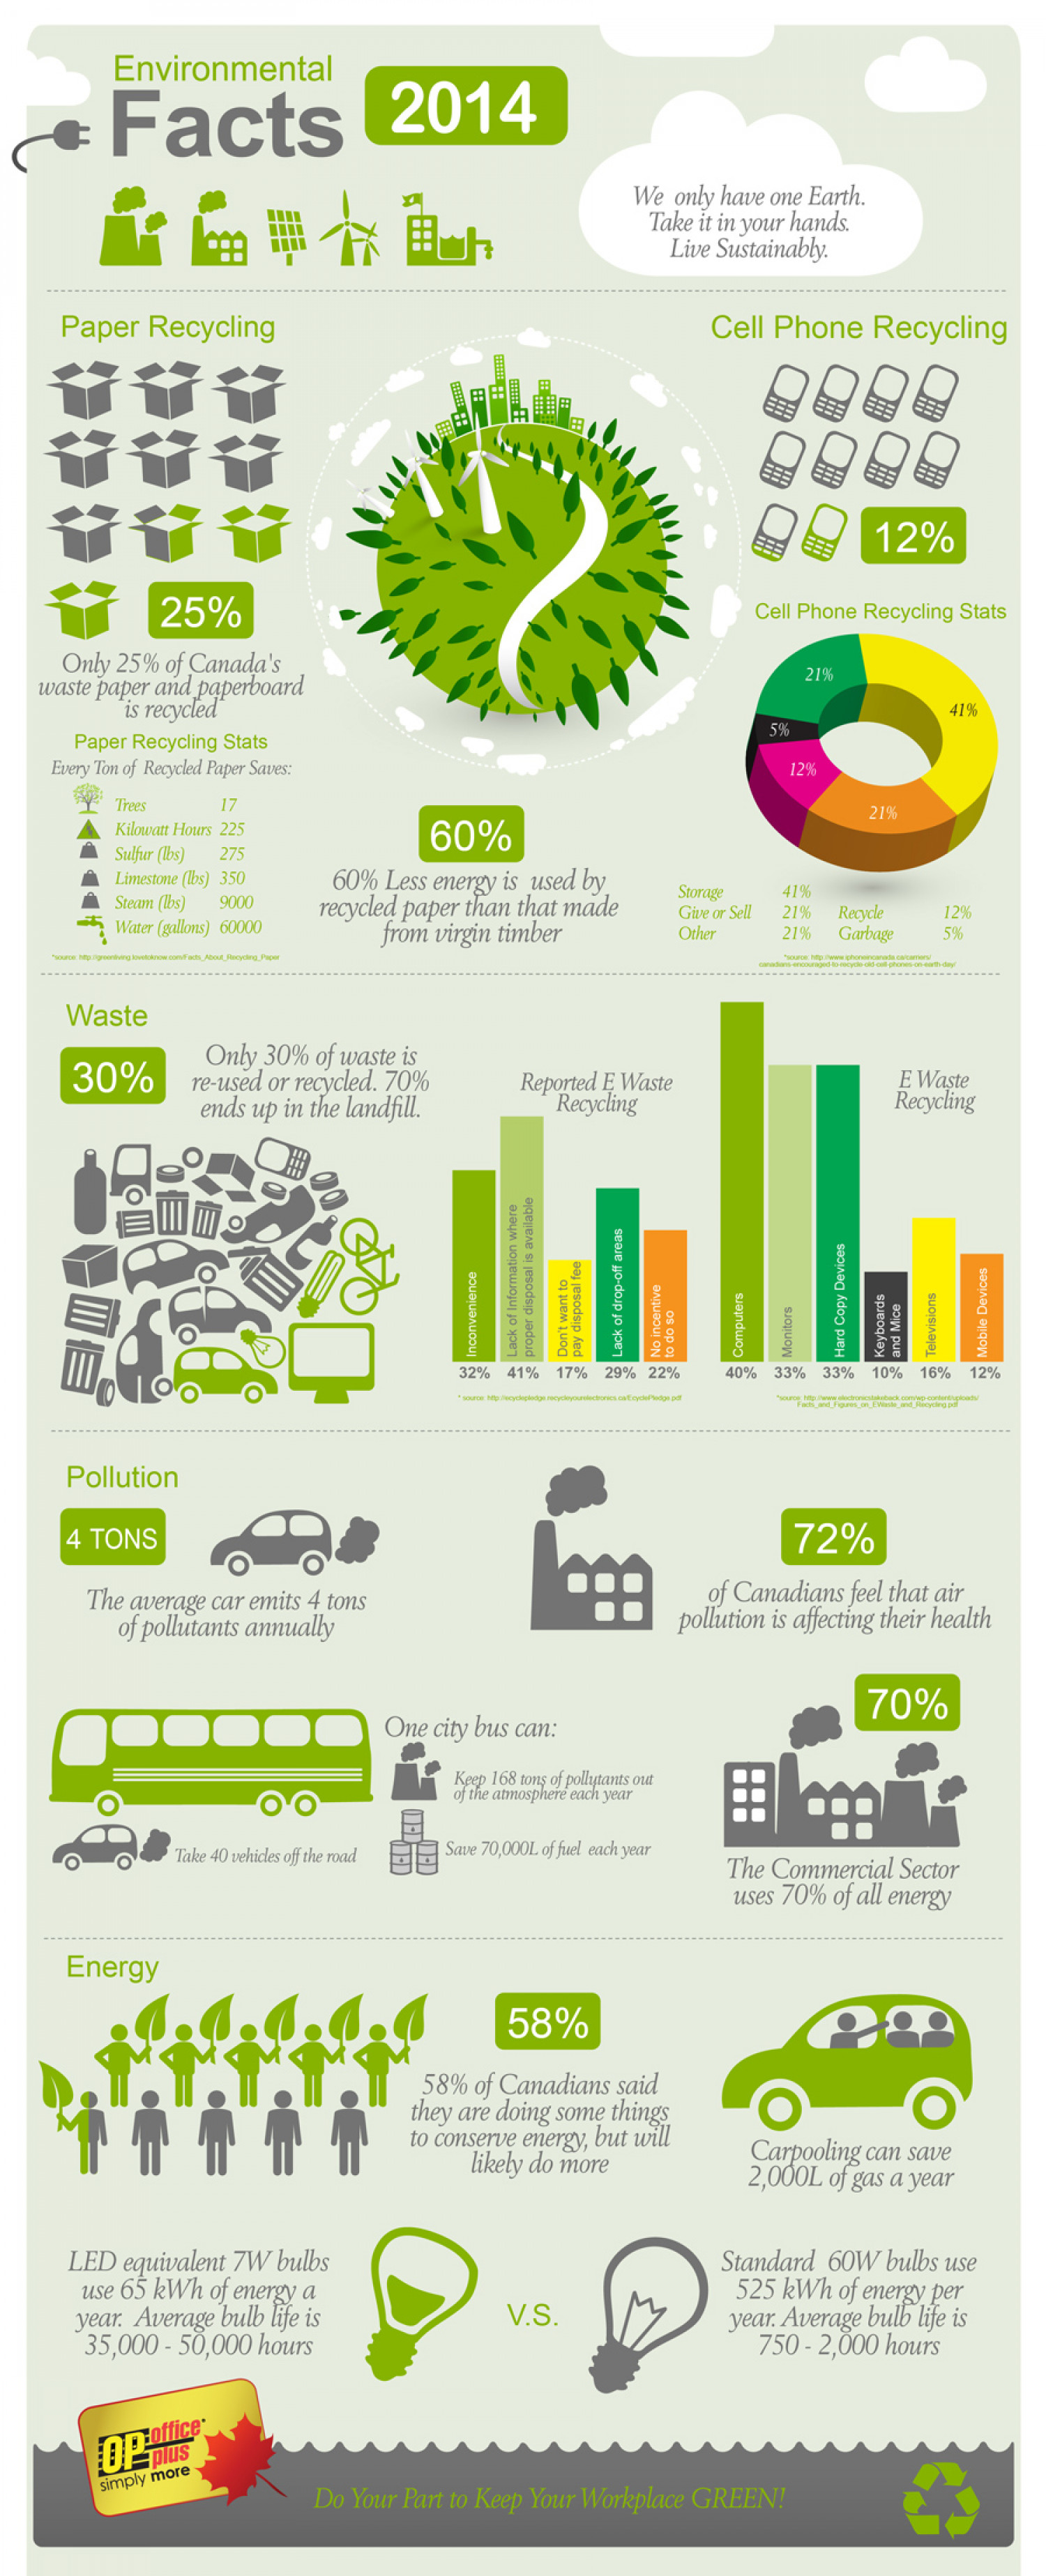 Earth Day Facts 2014 Infographic